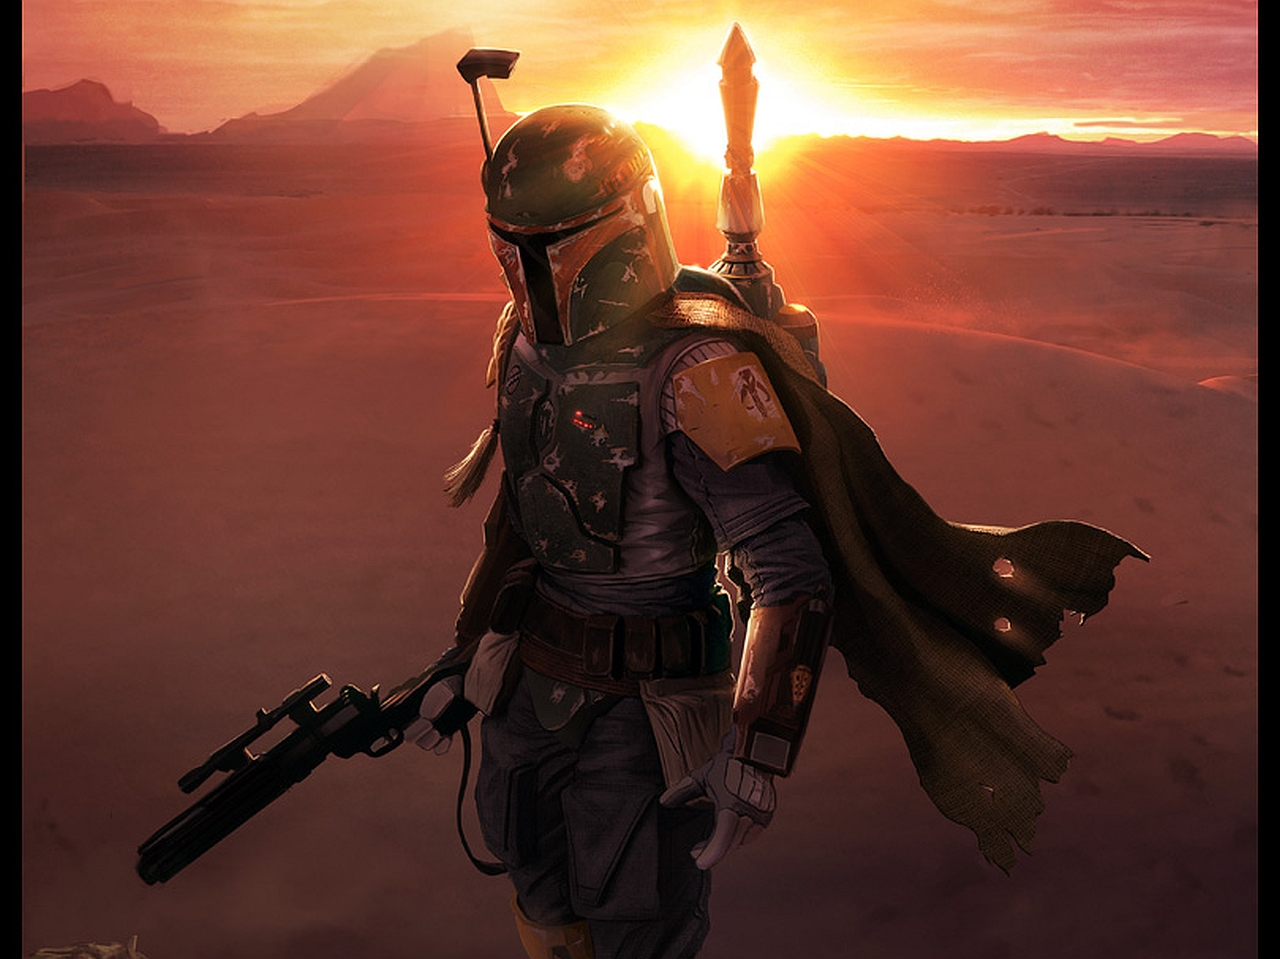 Boba Fett Wallpaper and Background 1280x959 ID384039 1280x959